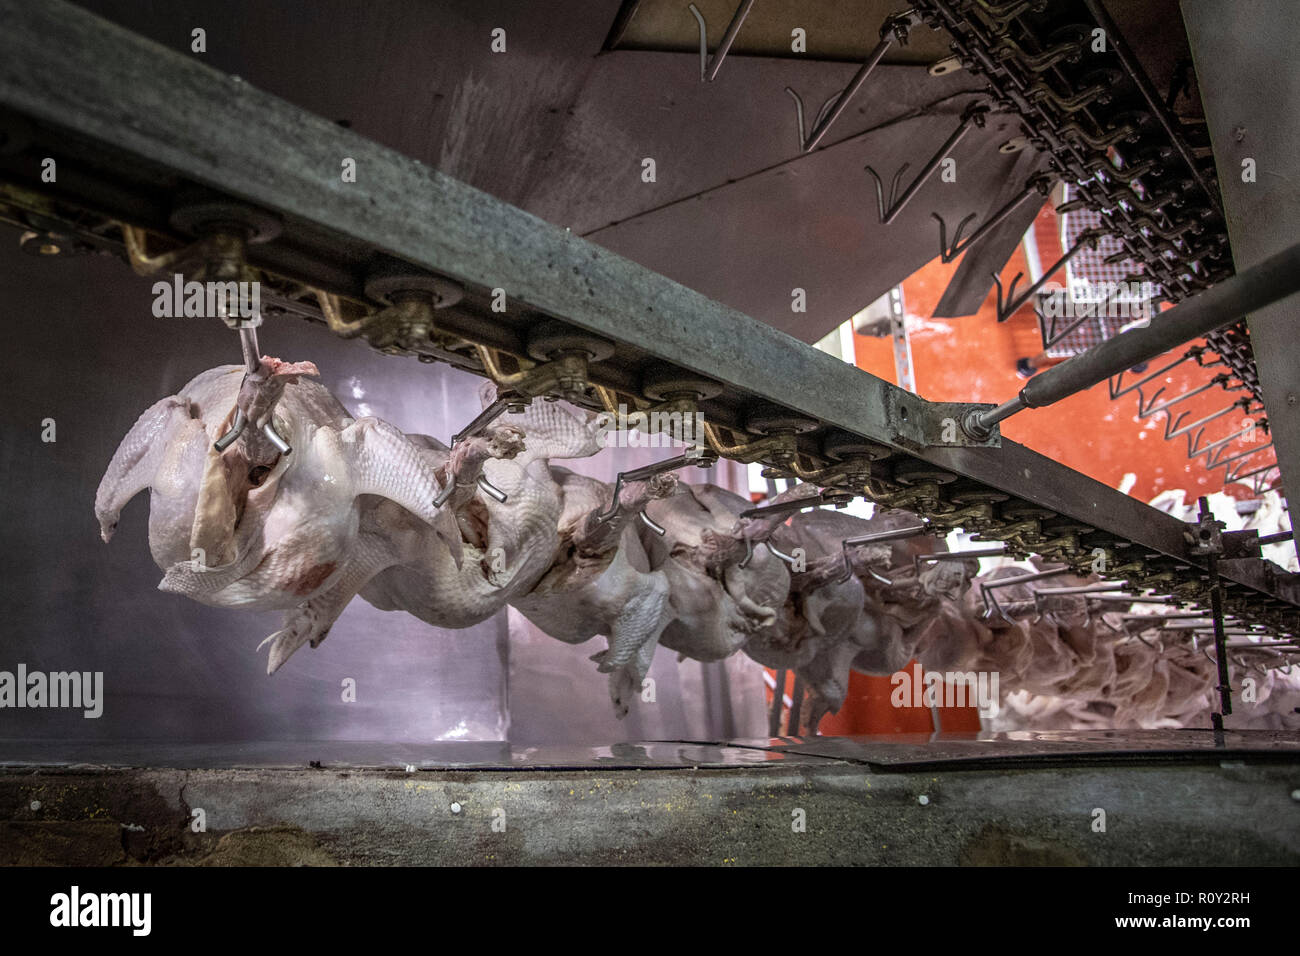 Thanksgiving turkeys hang from hooks as they are processed and graded by USDA inspectors at Plainville Farms Turkey Processing plant October 31, 2018 in New Oxford, Pennsylvania. - Stock Image